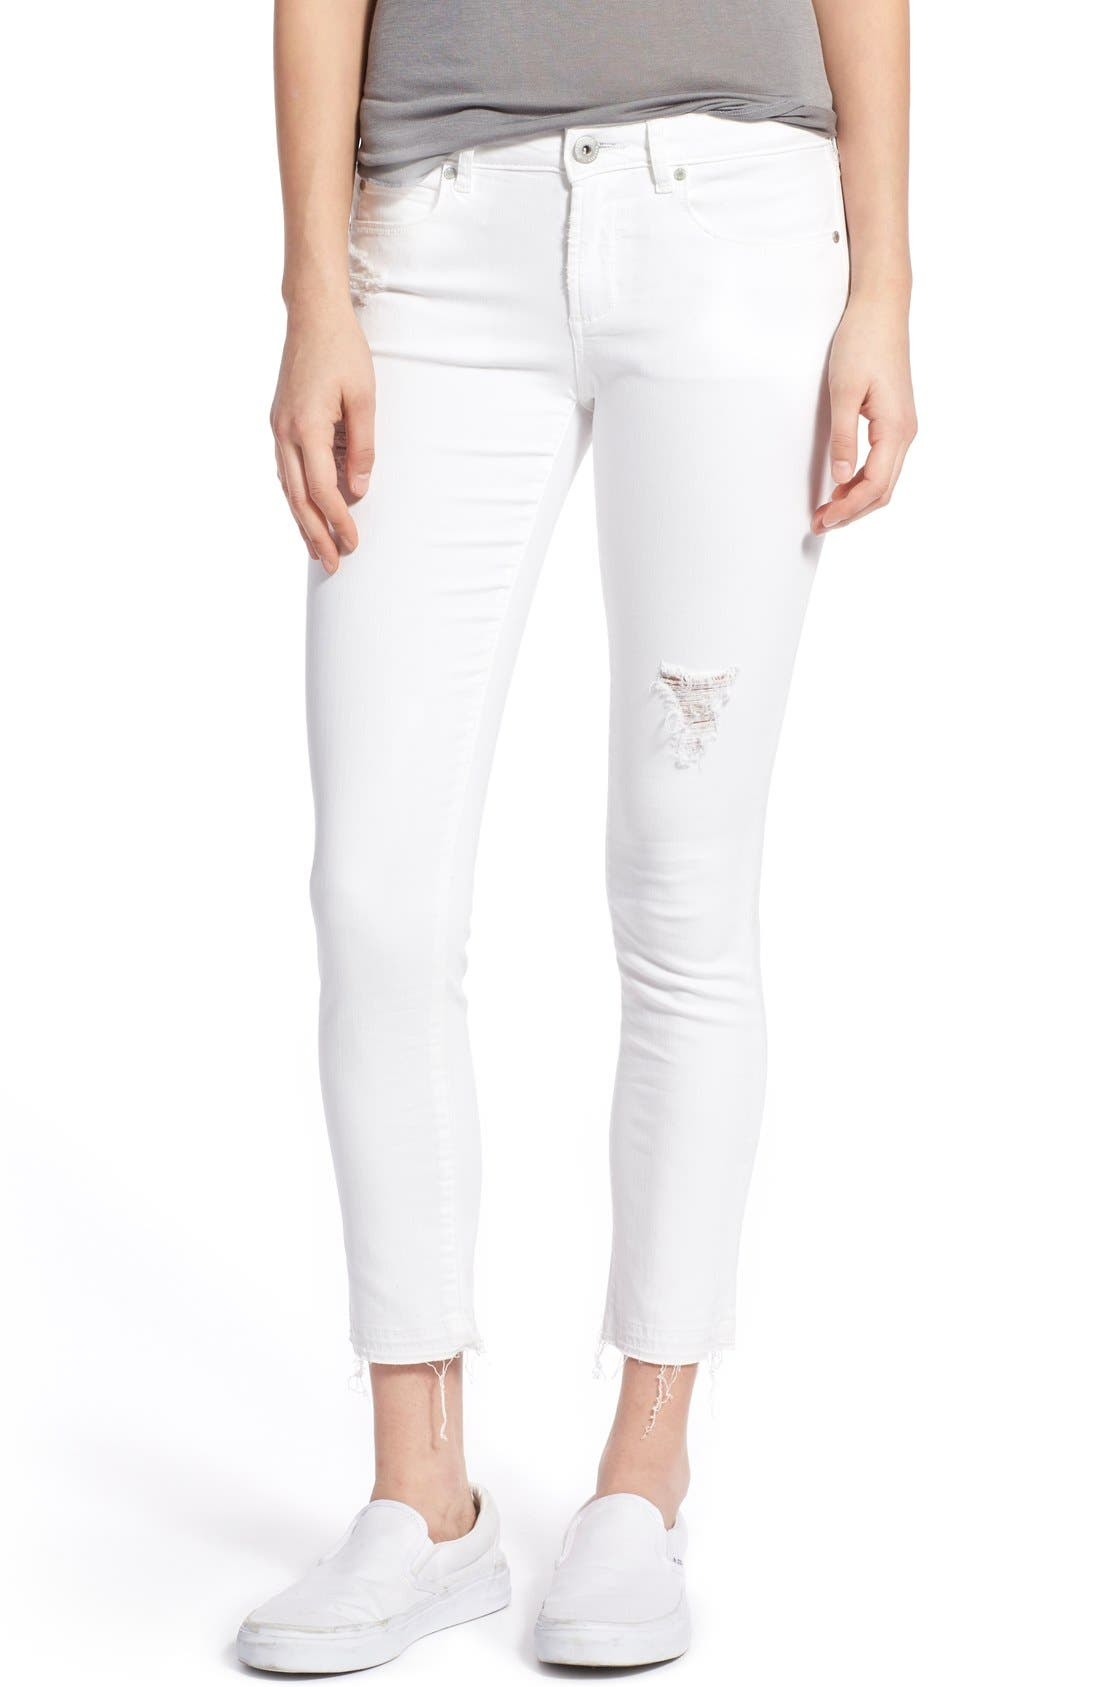 Alternate Image 1 Selected - Articles of Society 'Carly' Frayed Hem Crop Skinny Jeans (Worn White)